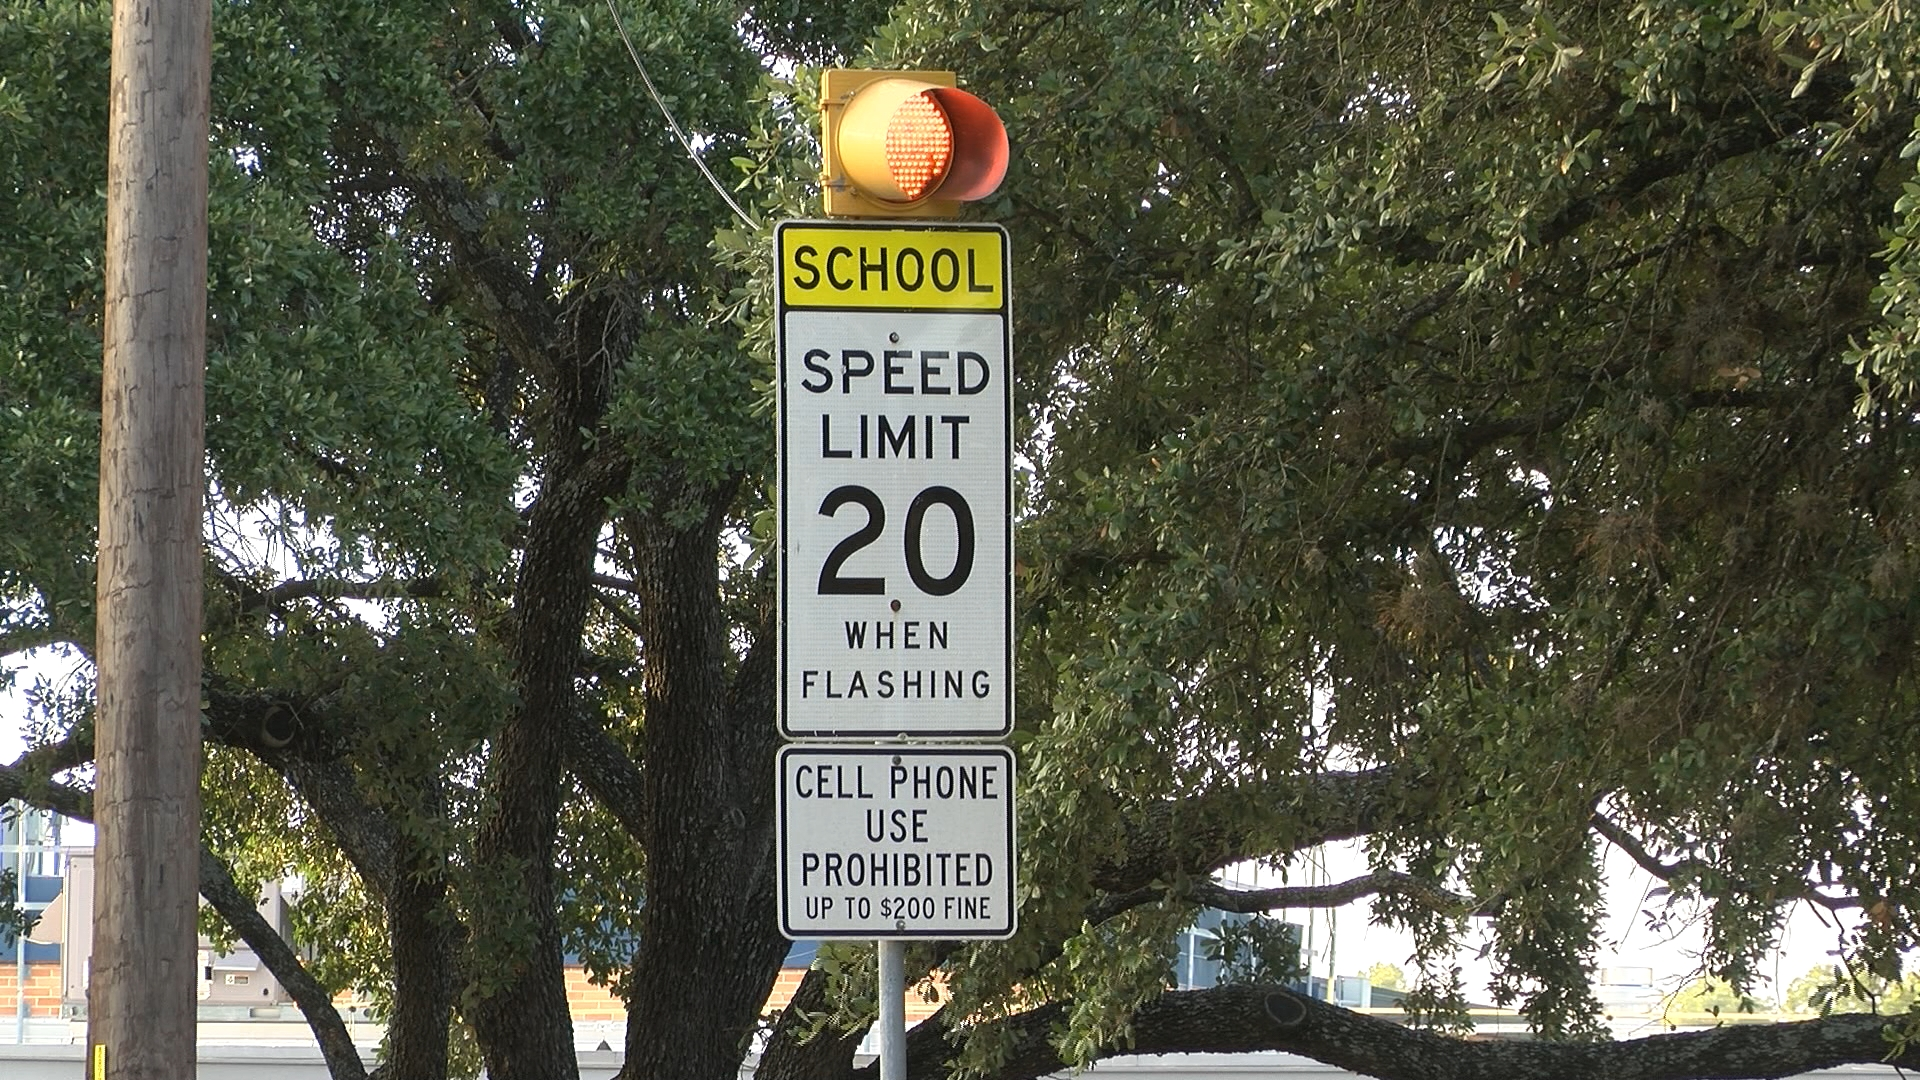 Texas DPS reminds drivers to put phones away in school zones | KXAN Austin